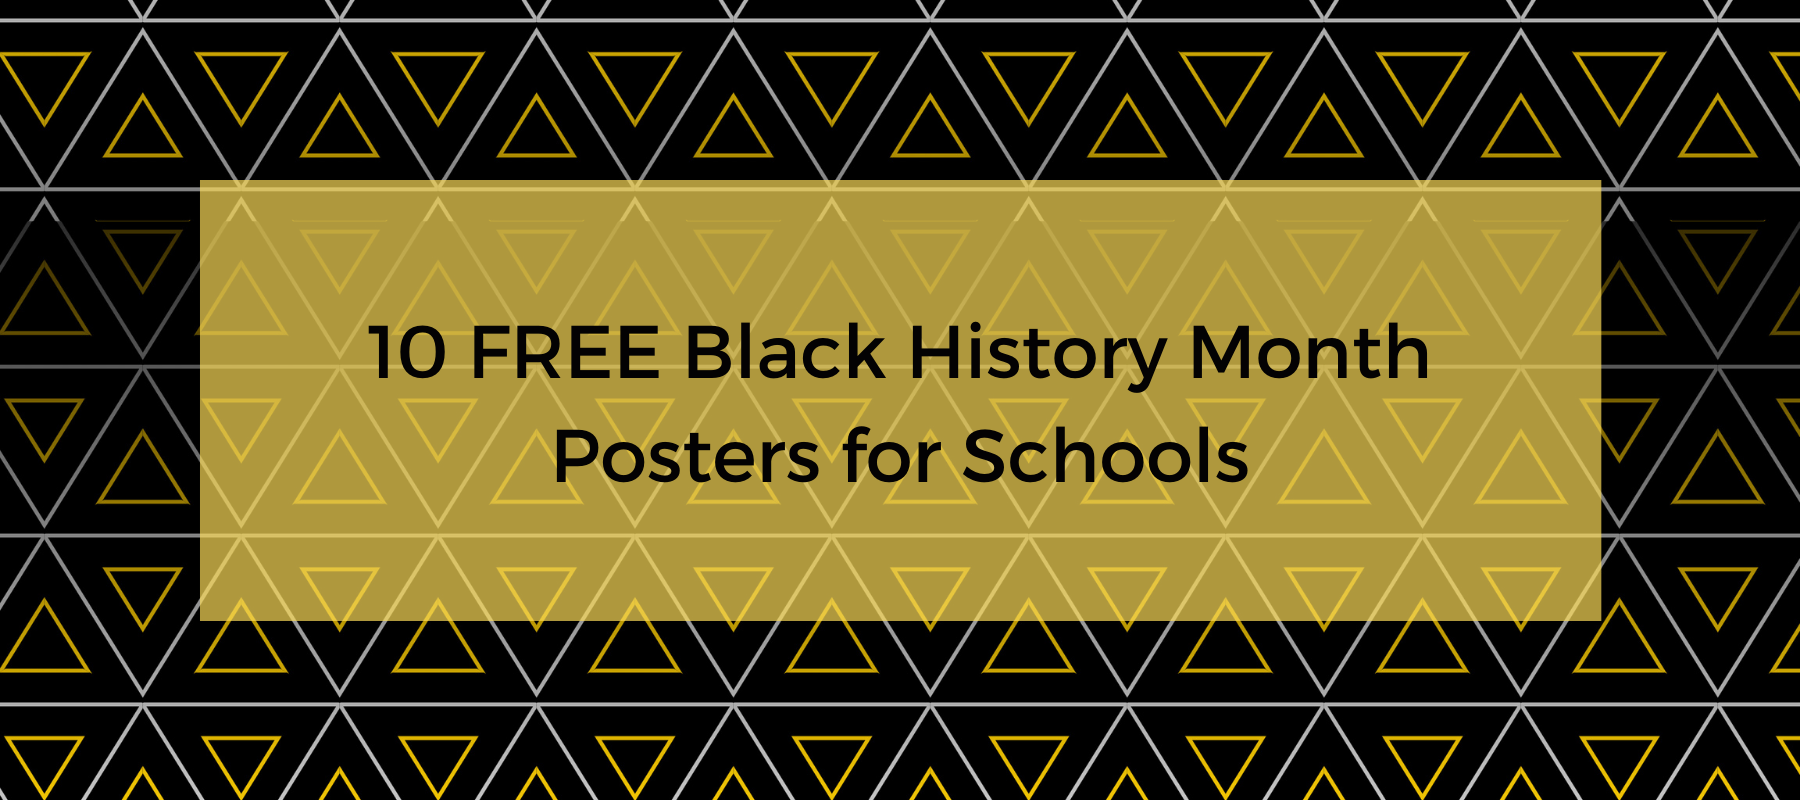 10 Free Black History Month Posters for Schools